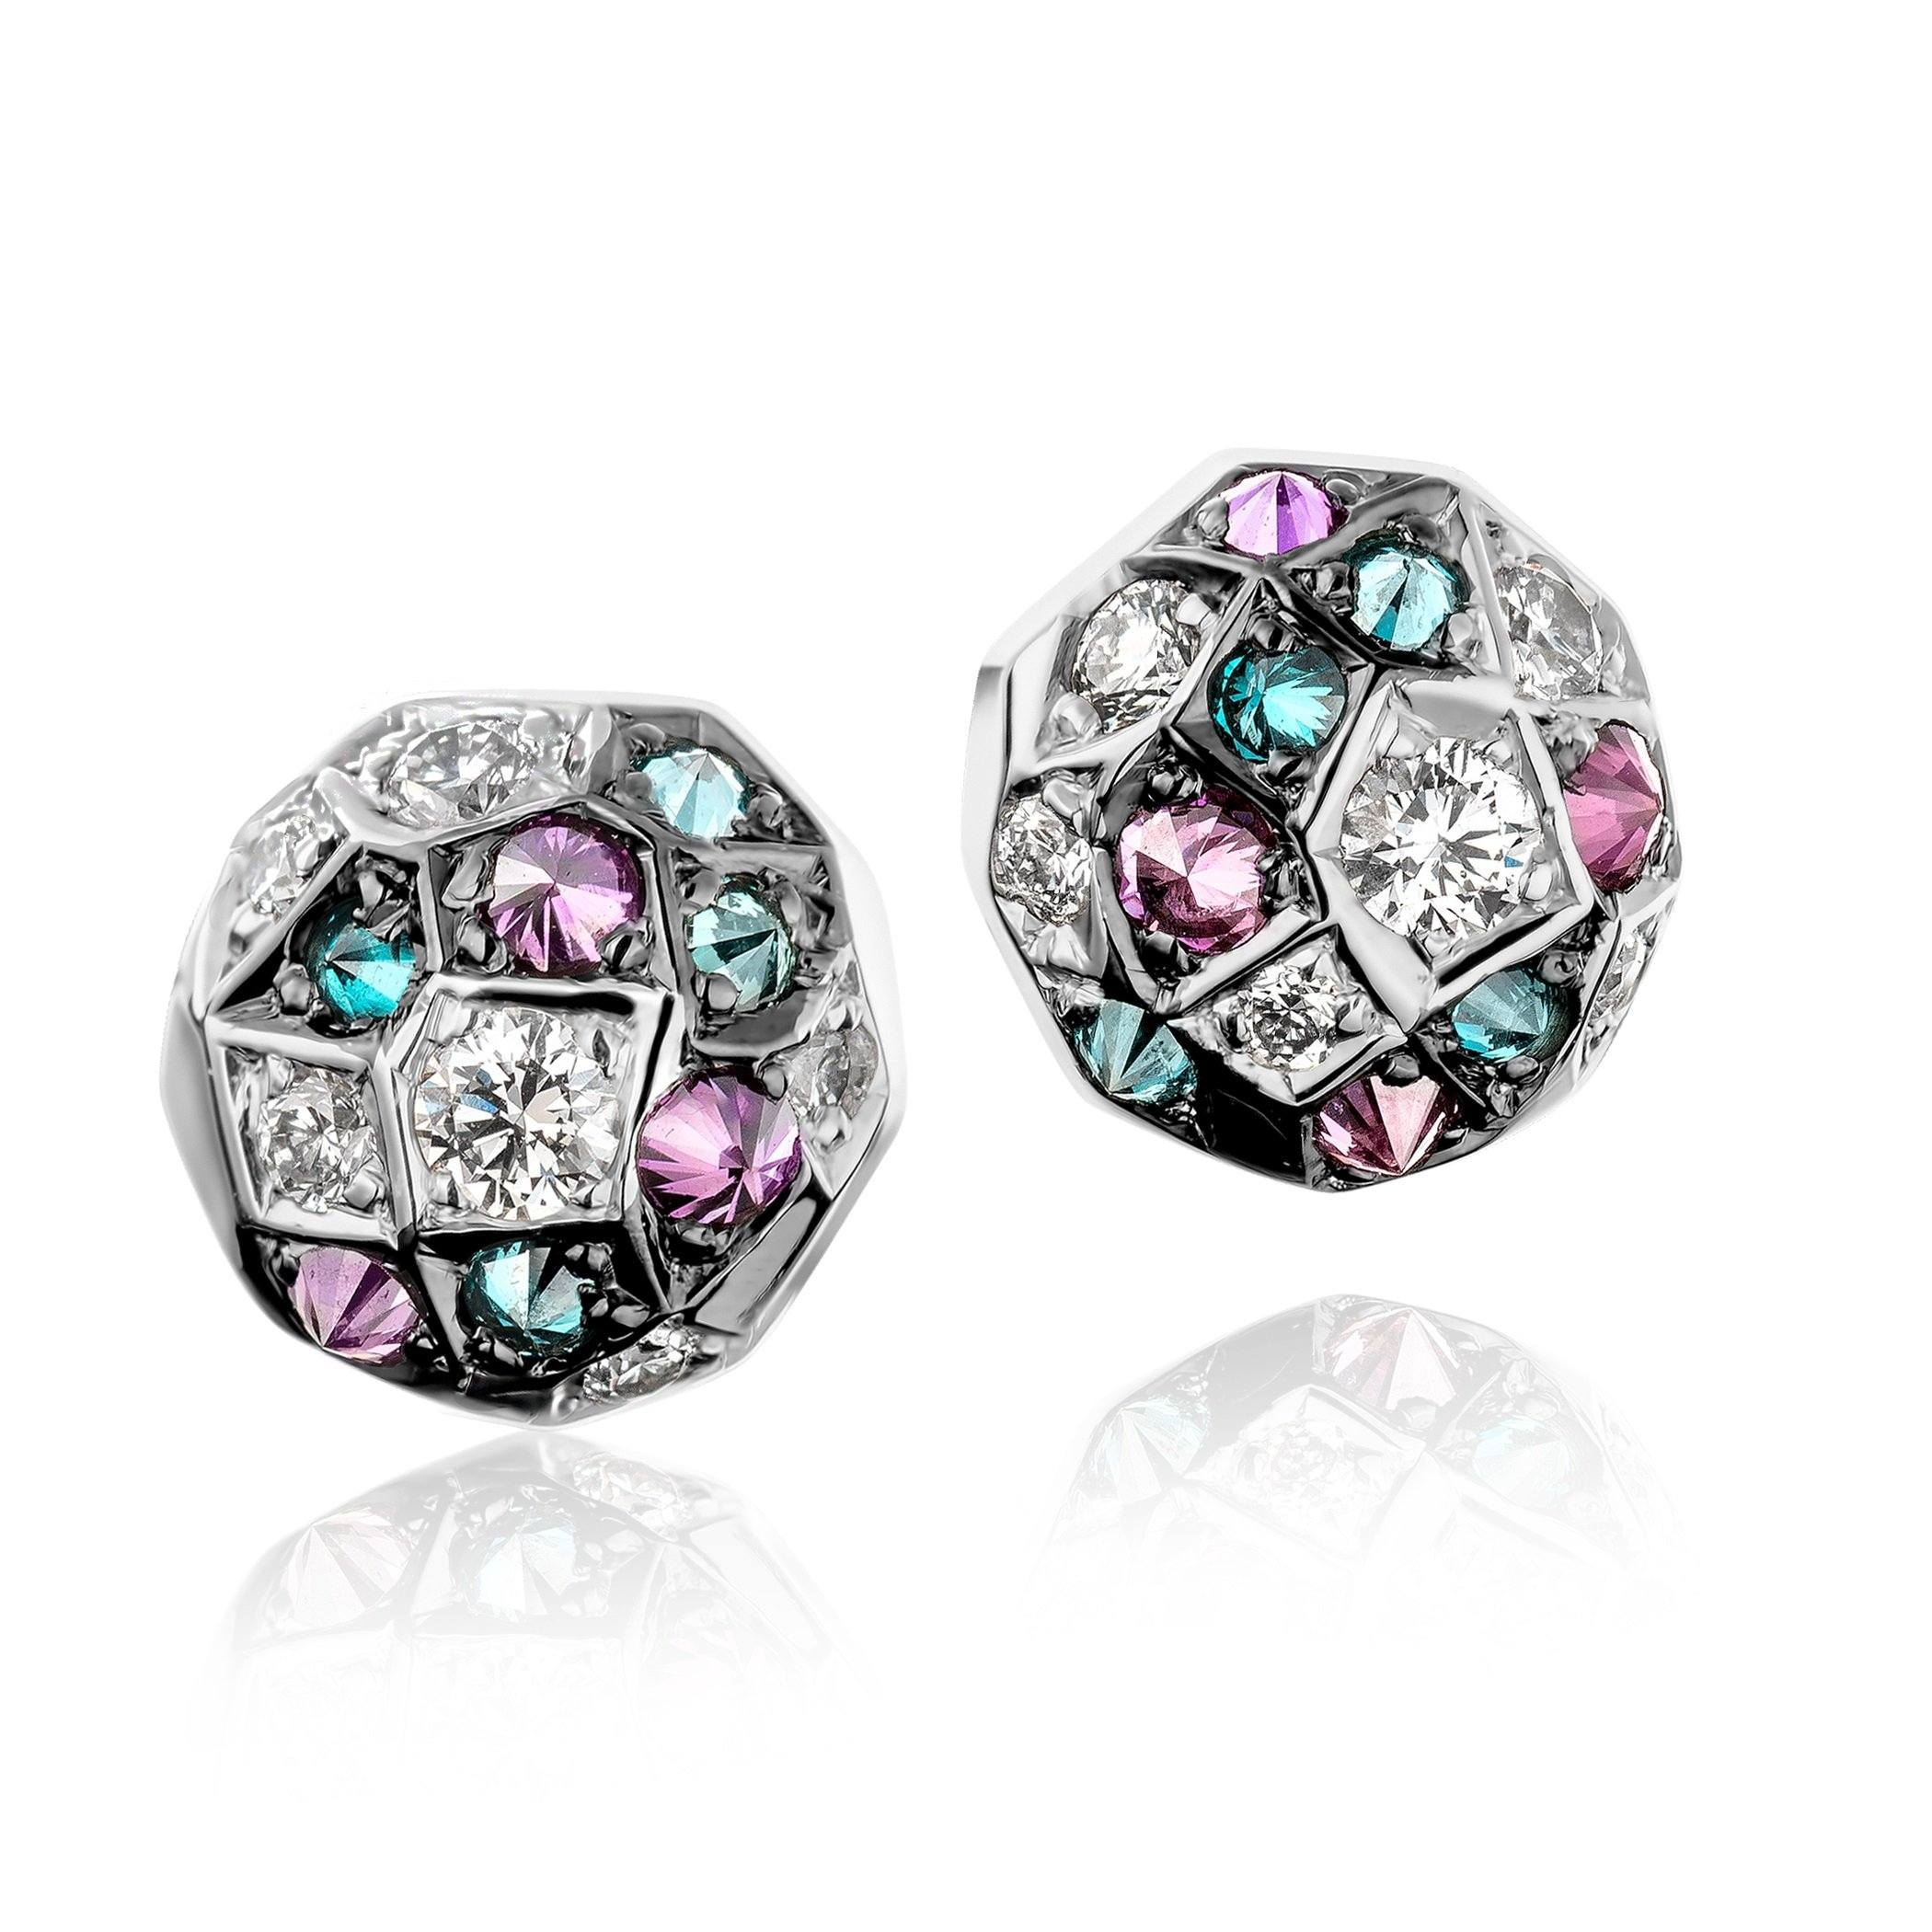 blue graff peony collections earrings stud diamond